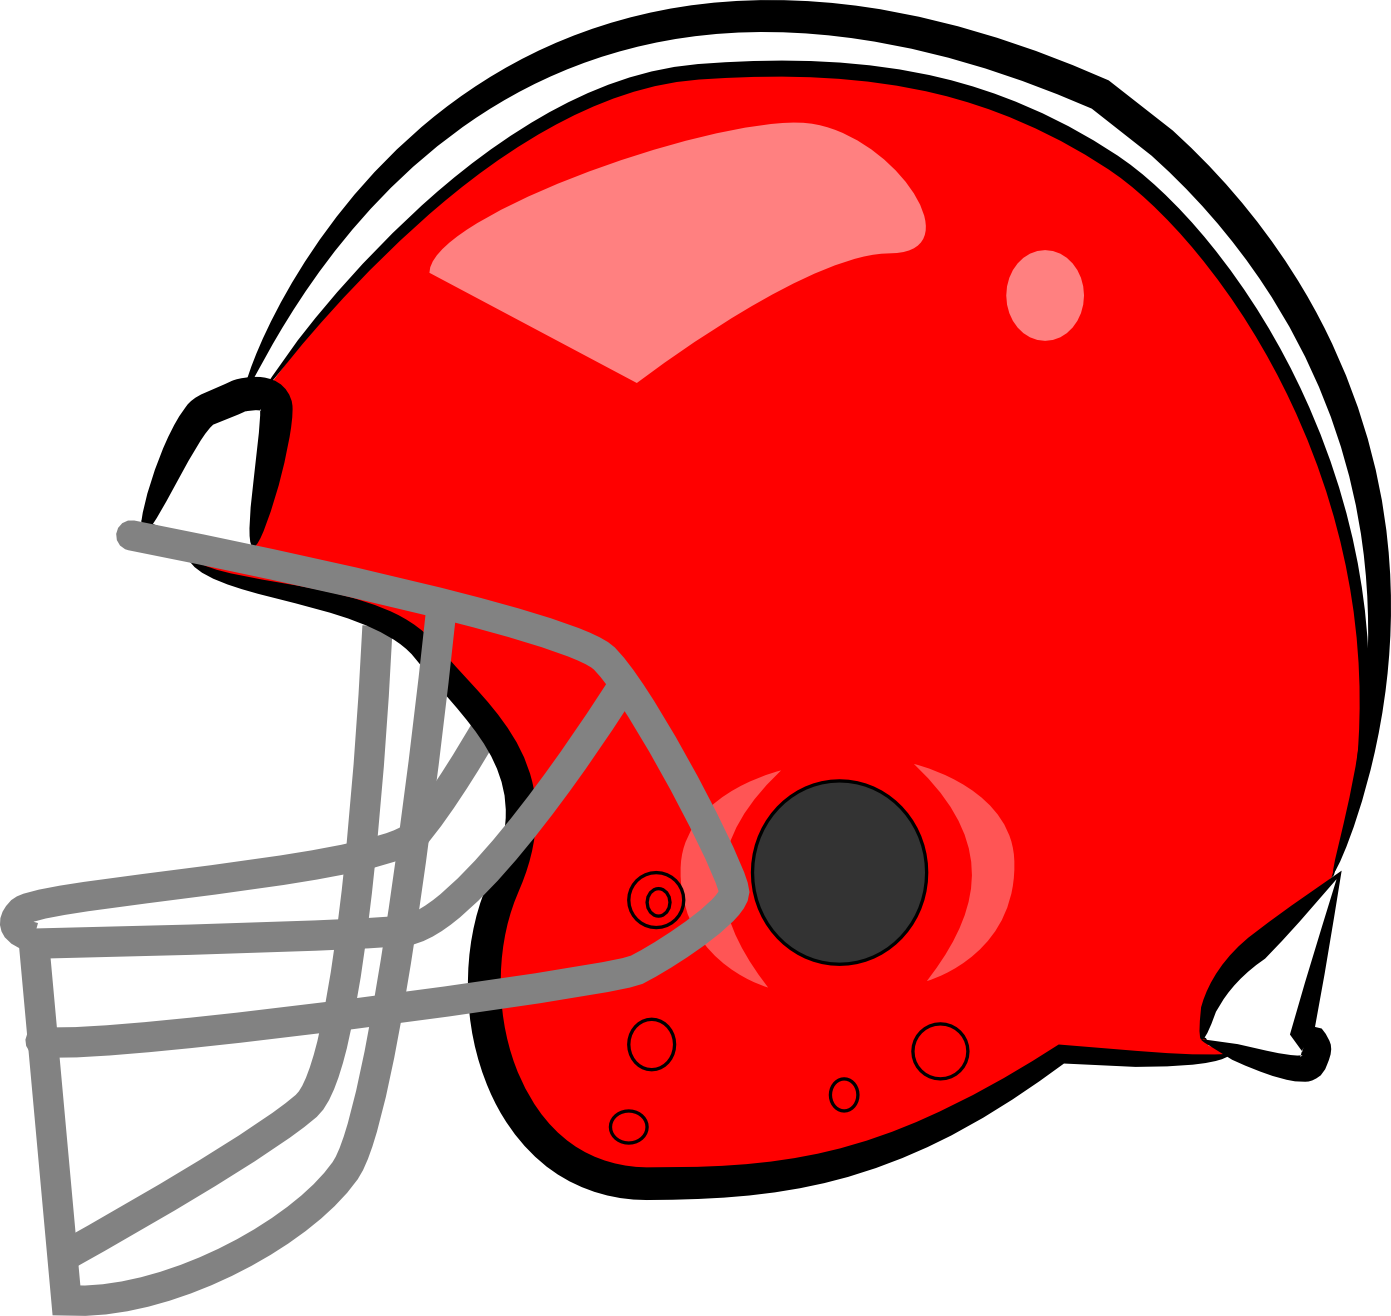 alabama football clipart at getdrawings com free for personal use rh getdrawings com university of alabama football clipart alabama football clipart free